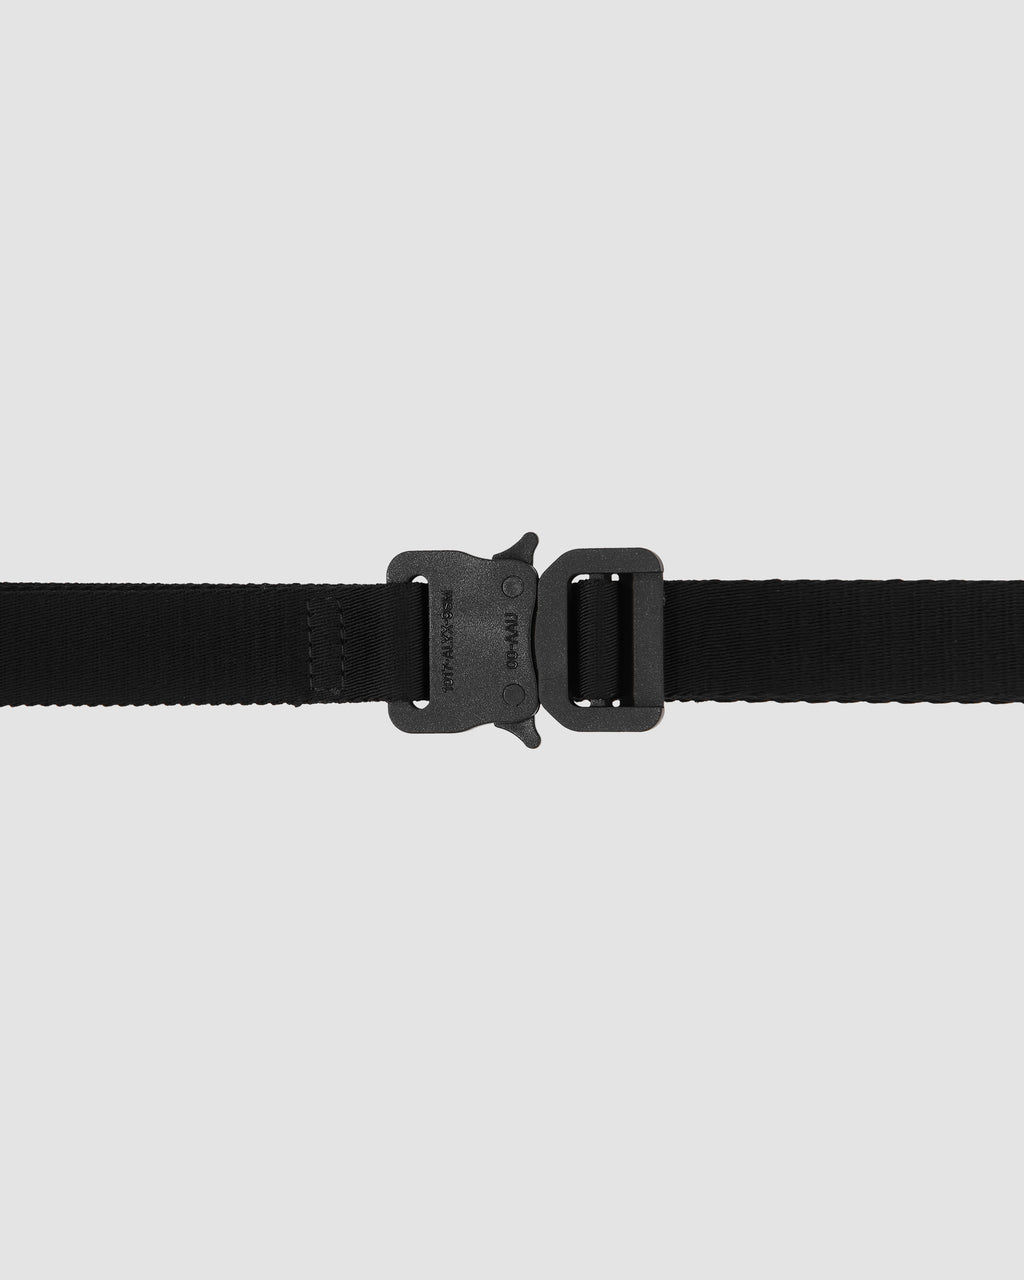 1017 ALYX 9SM | MEDIUM ROLLERCOASTER BELT | Belt | Accessories, Belt, BELTS, BLACK, Google Shopping, Man, S20, S20 Drop II, UNISEX, Woman